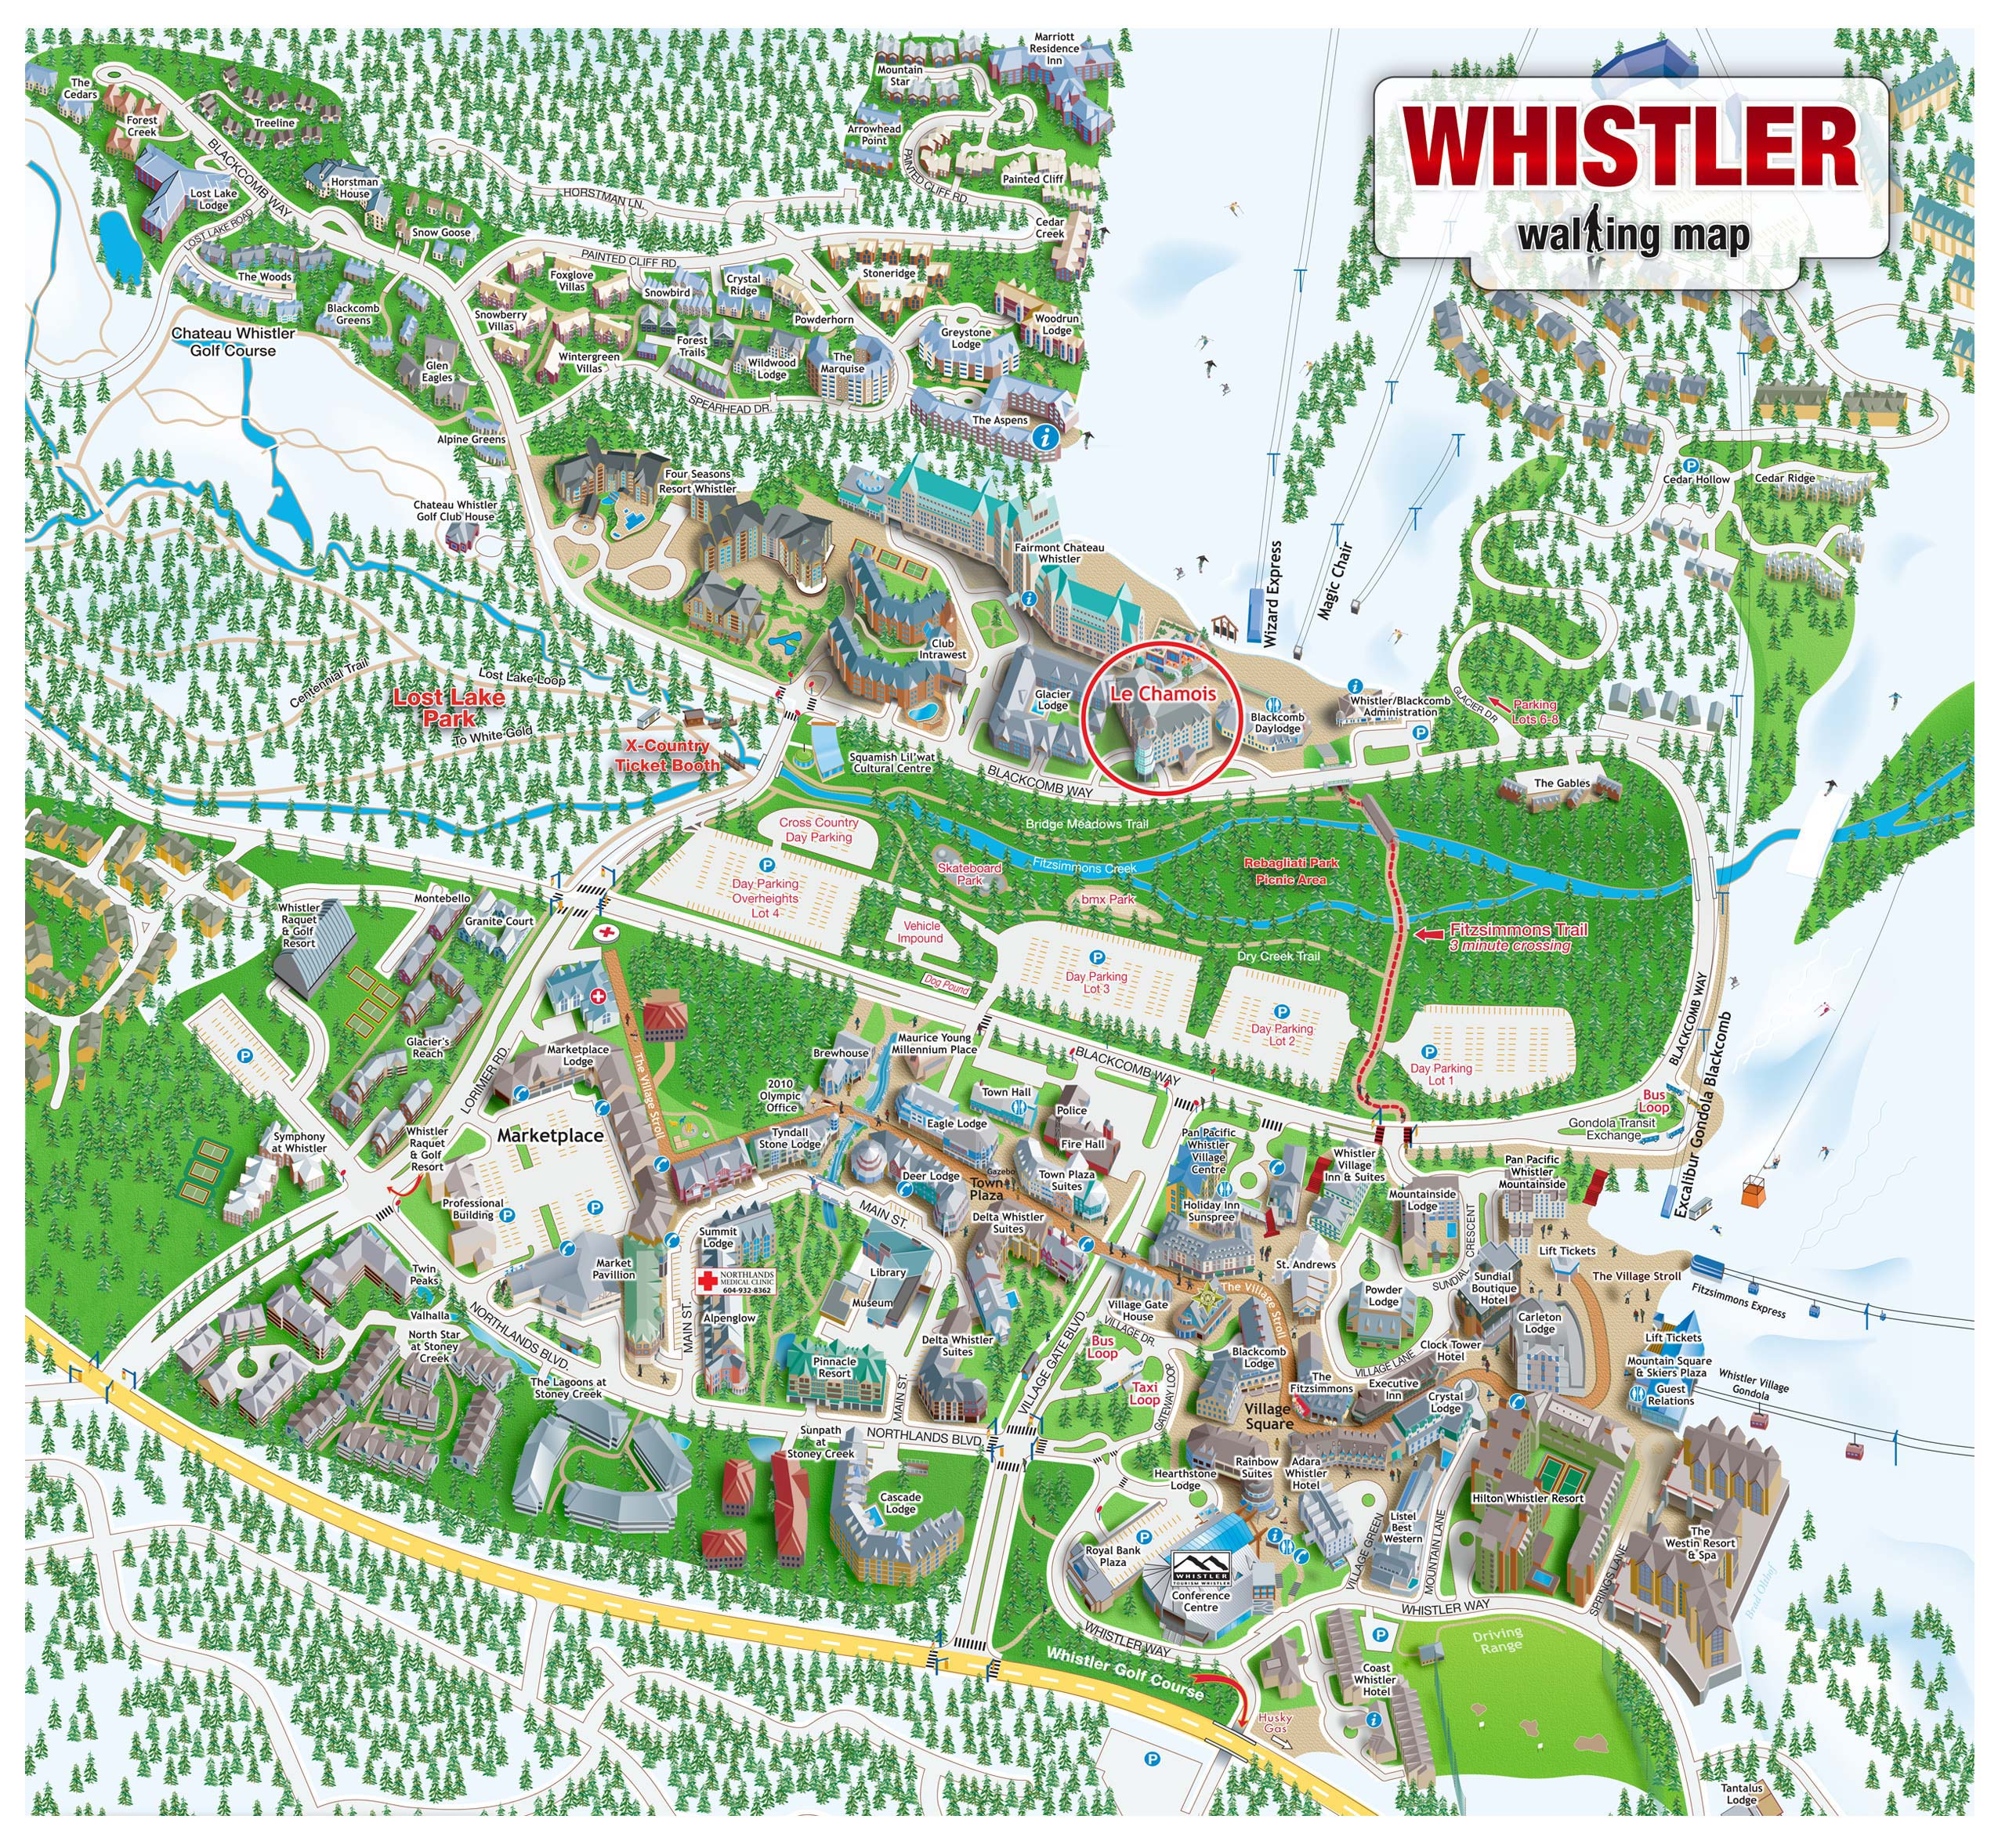 Whistler Blackcomb Whistler Village Map Whistler Bc Review Ebooks